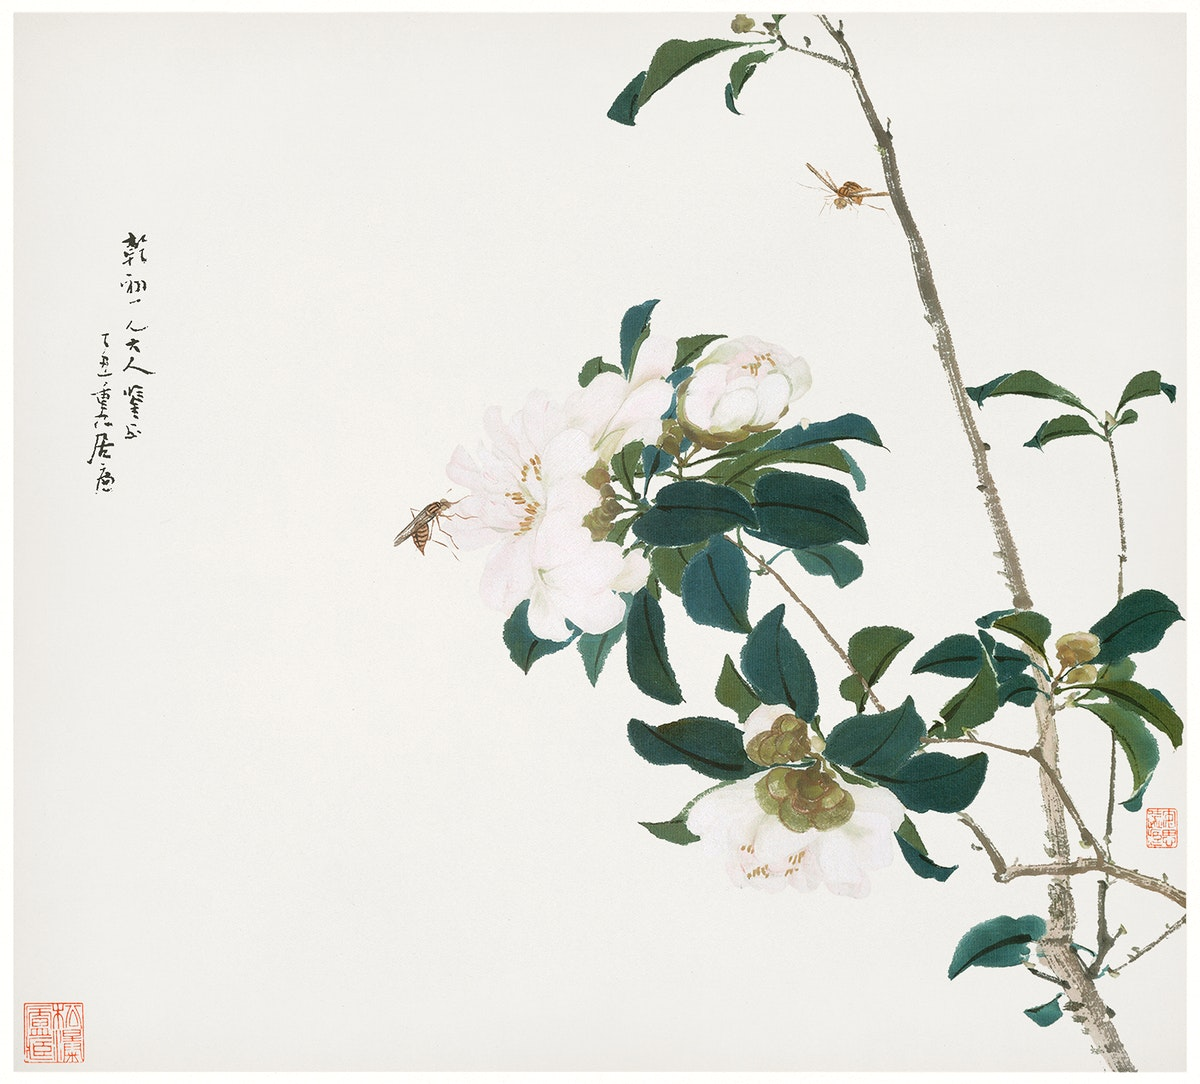 Insects and Flowers (Qing dynasty ca. 1644–1911) by Ju Lian. Original from The Getty. Digitally enhanced by rawpixel.